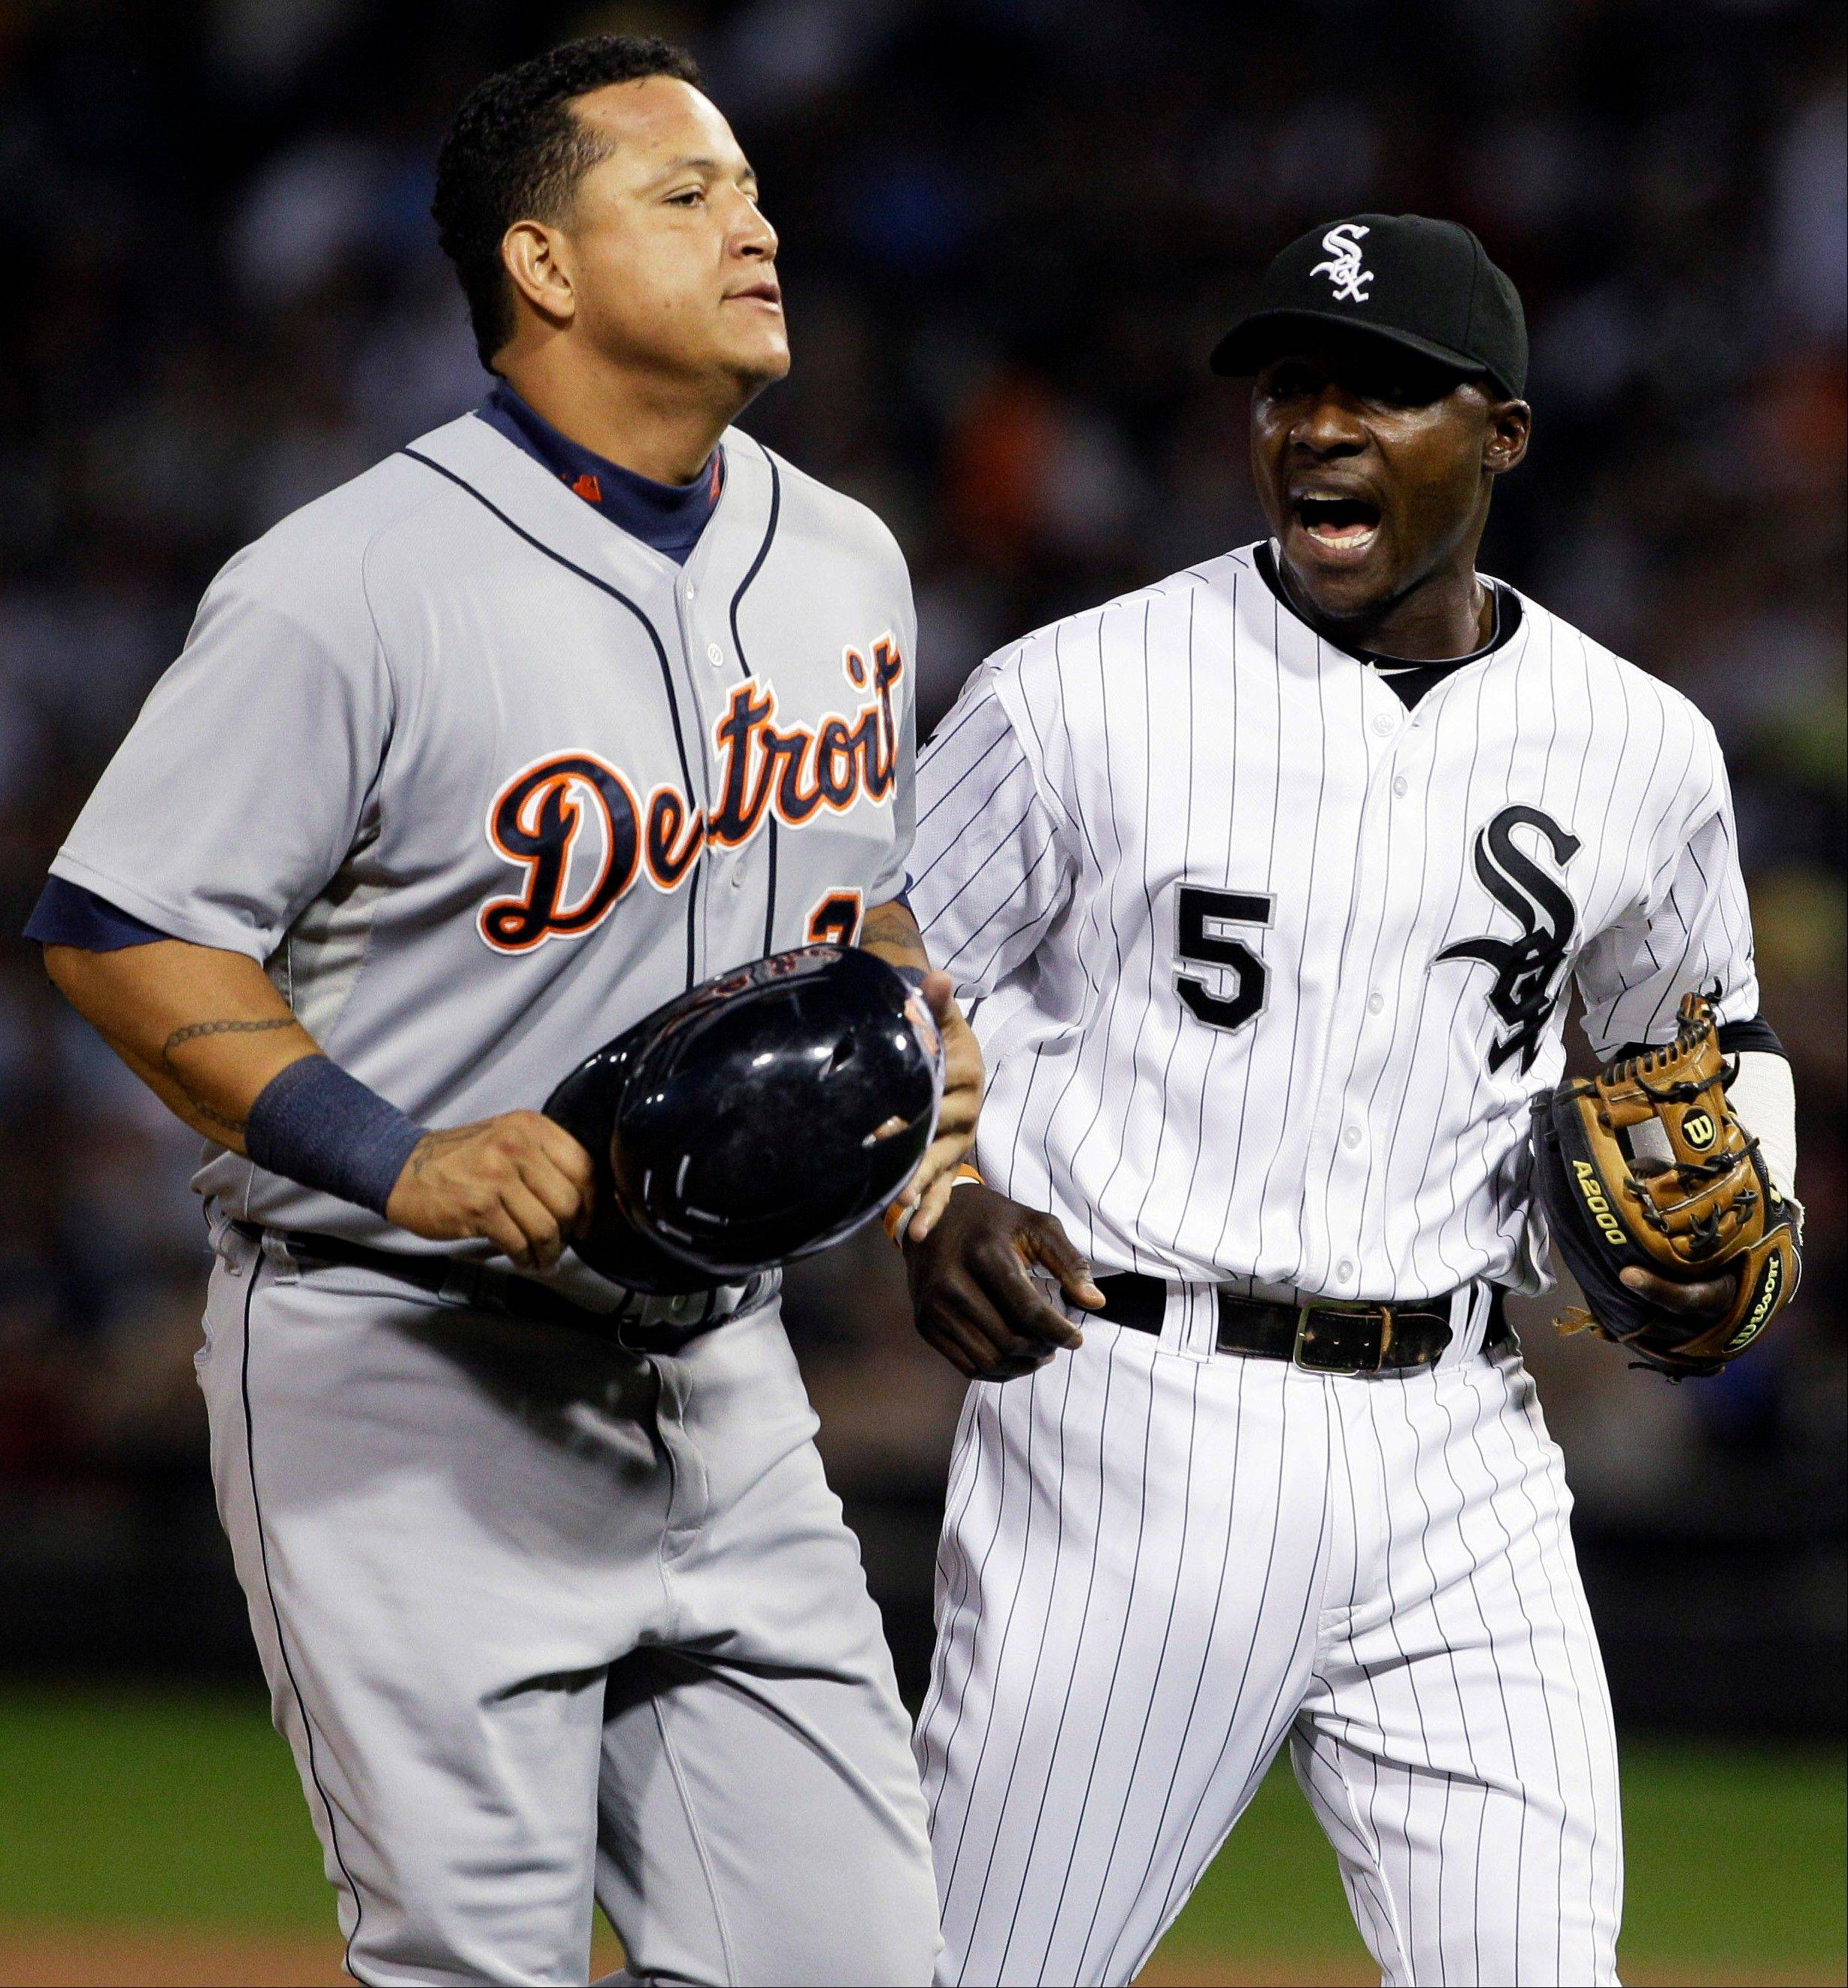 Sox get no relief from hungry Tigers